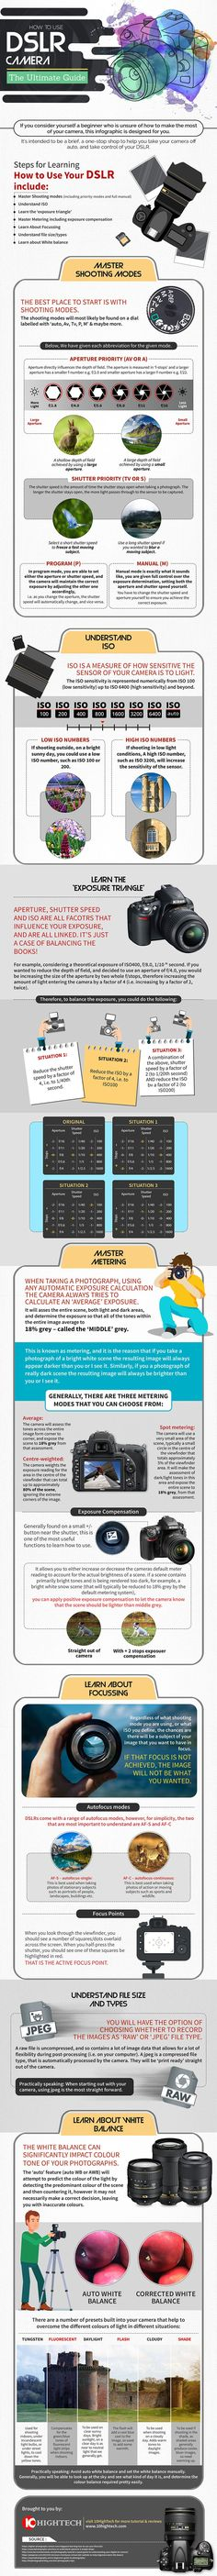 How to Use DSLR Camera The Ultimate Beginners Guide #infographic #Photography #Dslr #Camera #HowTo